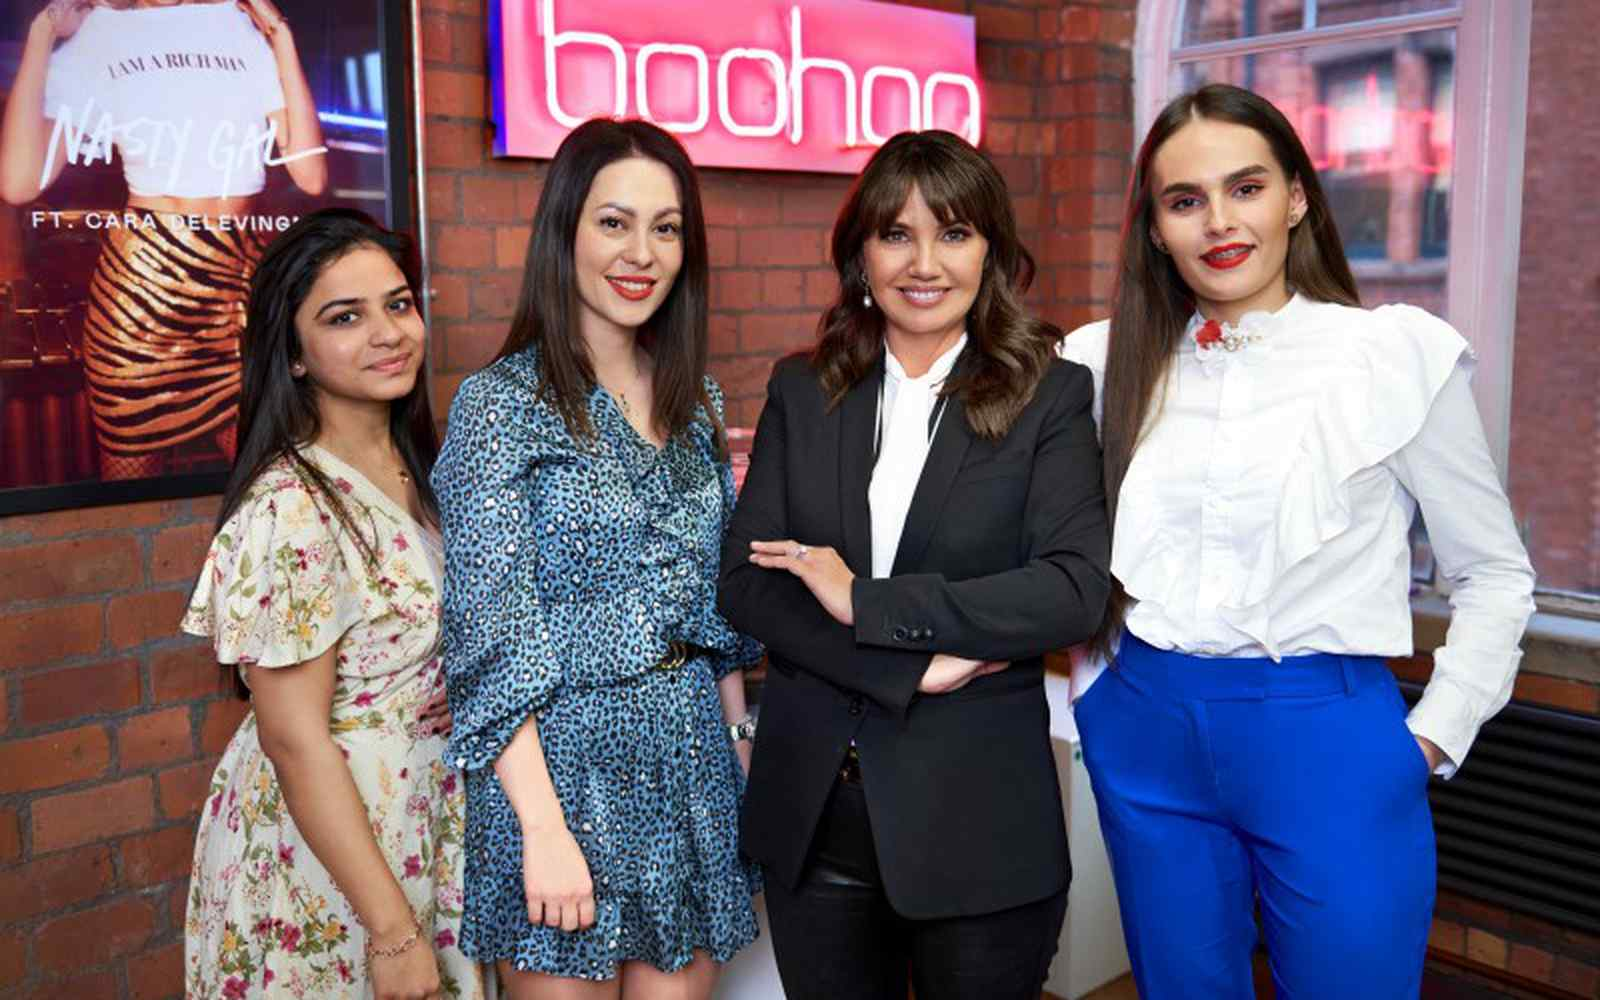 boohoo founder Carol Kane posing with 3 female fashion students in front of an neon sign